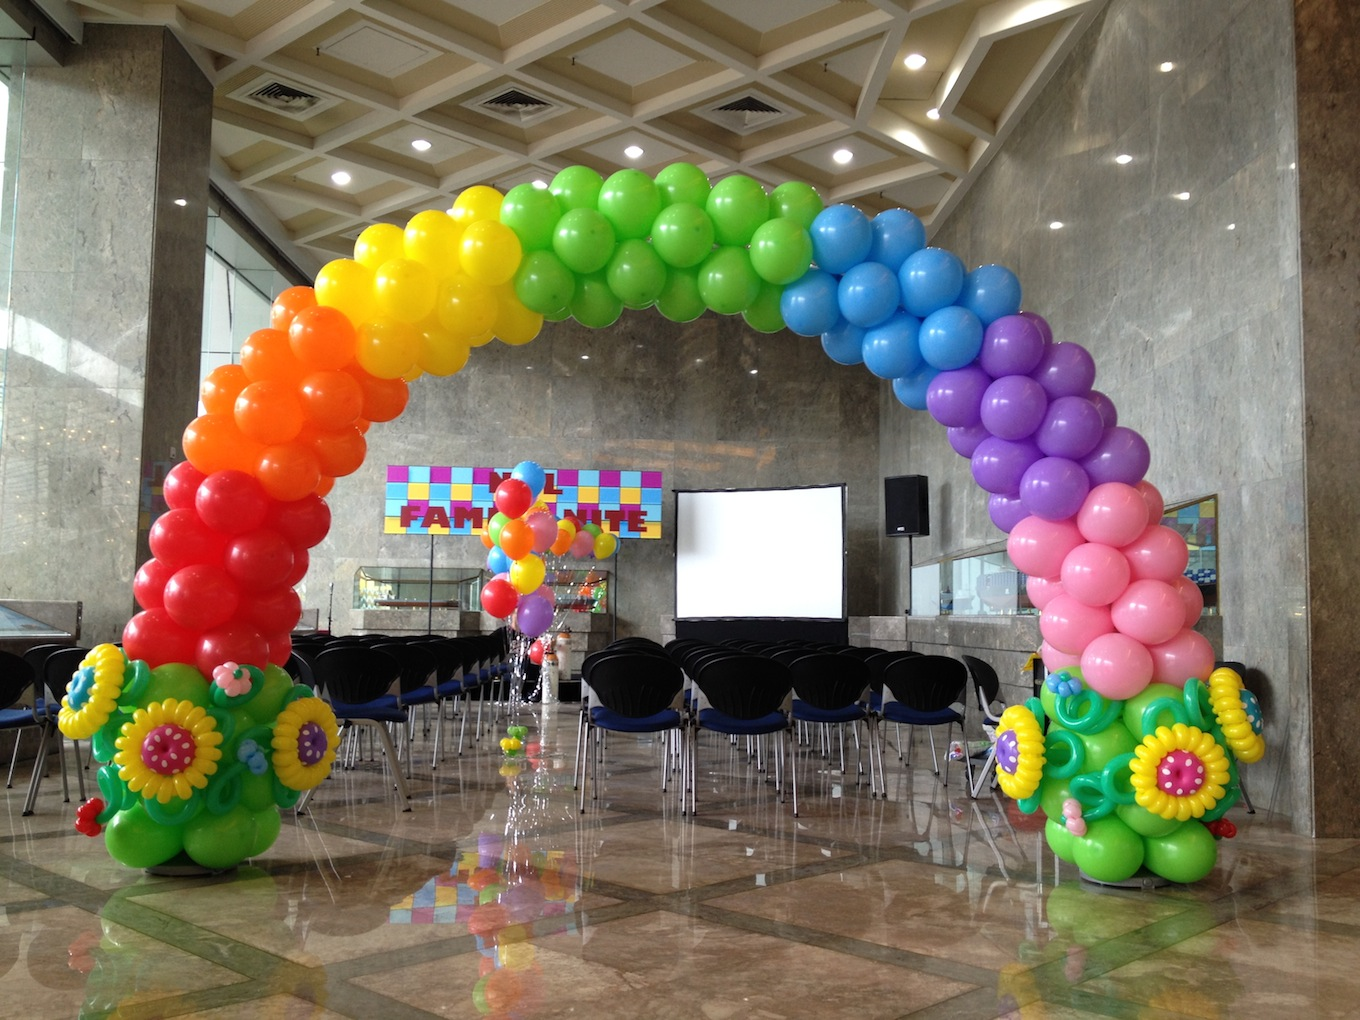 Balloon tunnel that balloons for Balloon arch decoration ideas